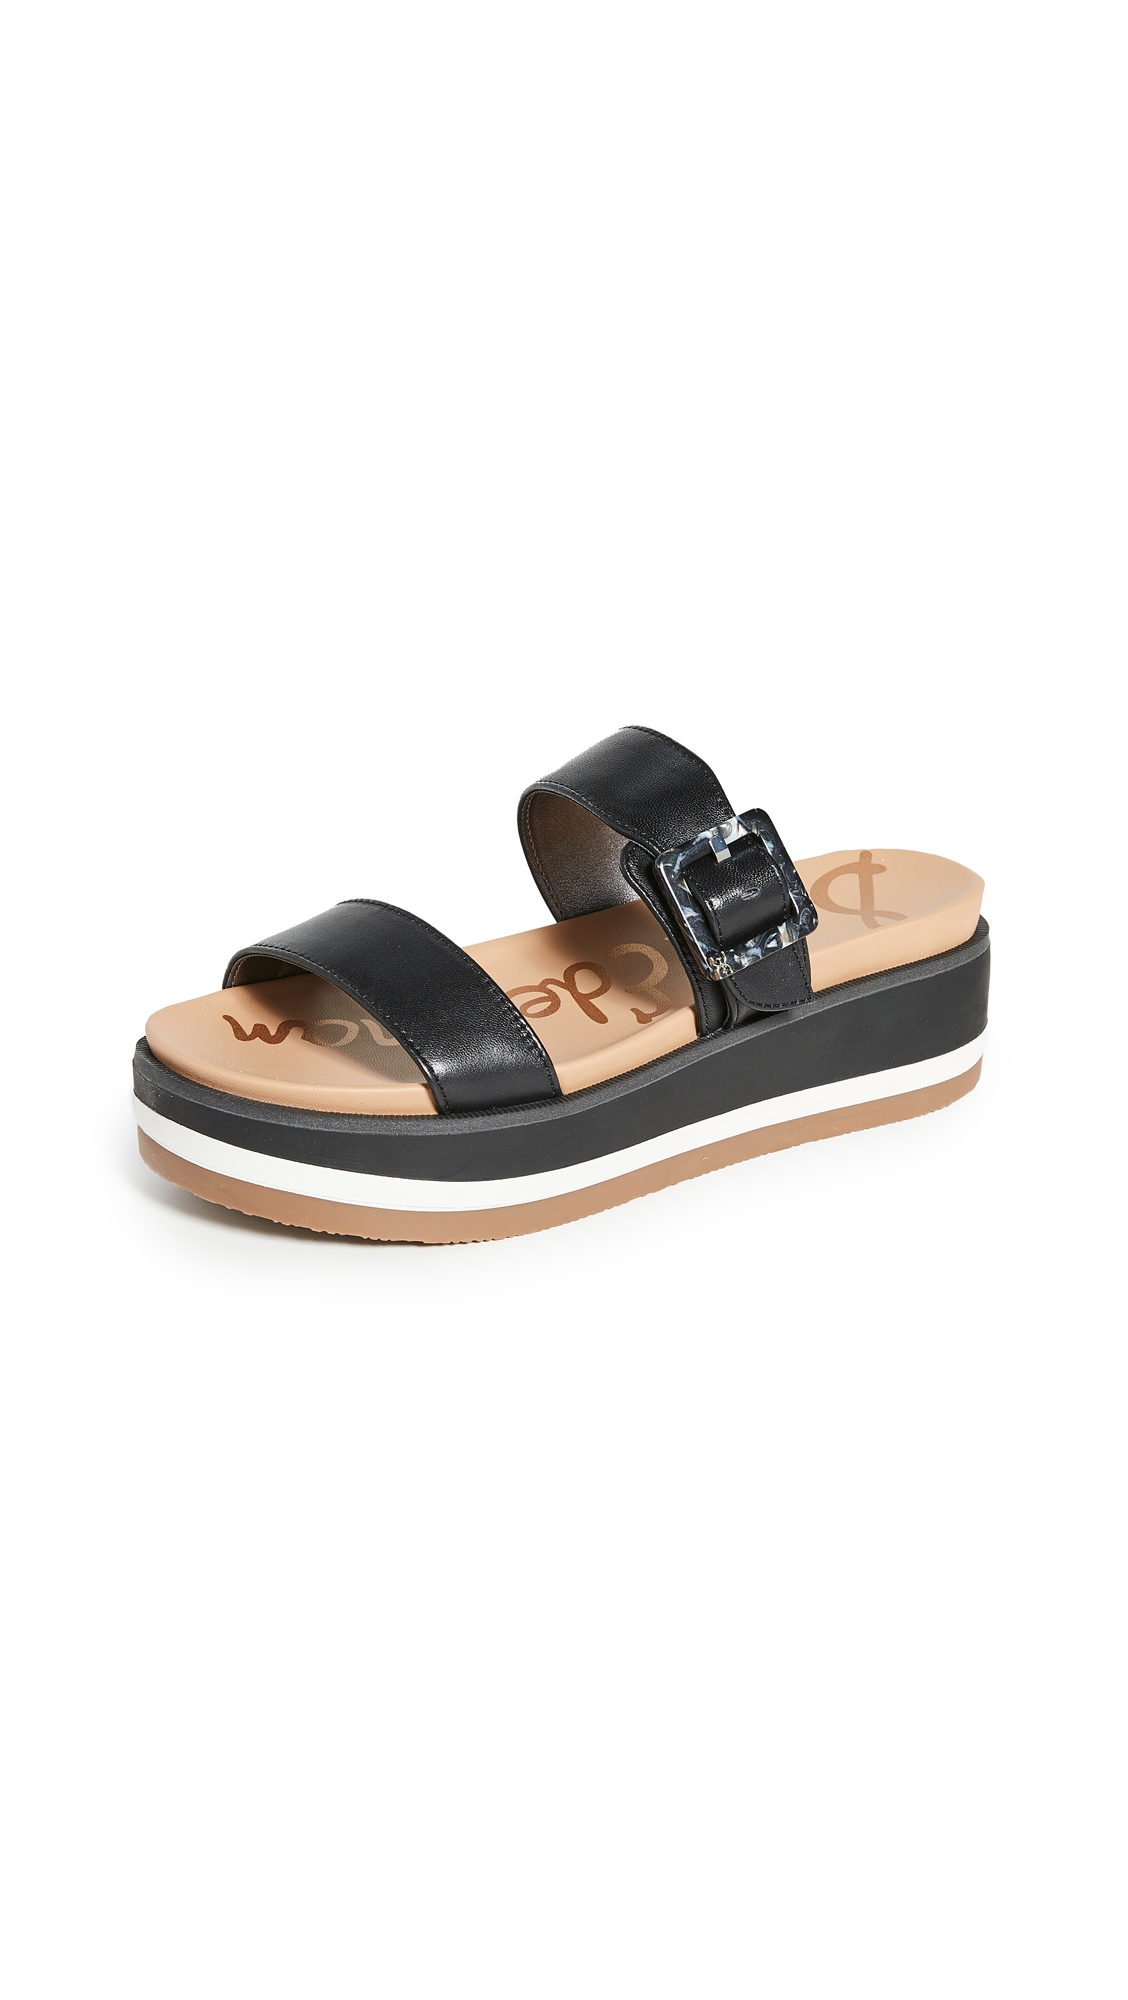 Sam Edelman Agustine Slides – 40% Off Sale